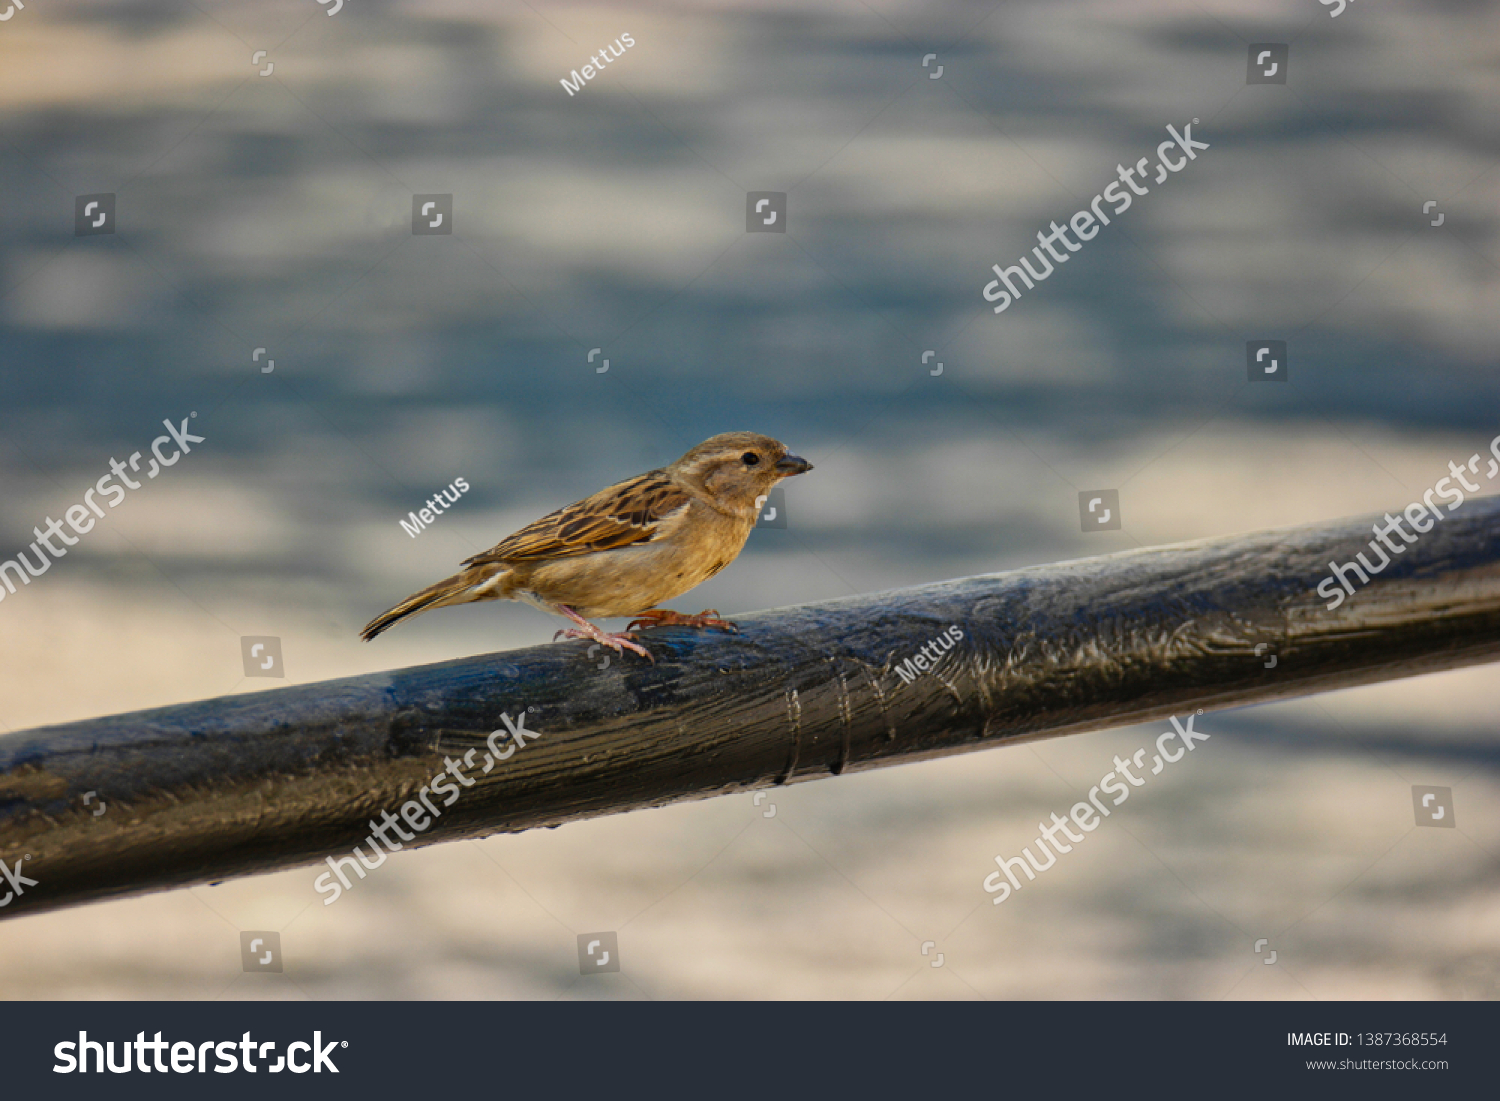 stock-photo-small-sparrow-is-sitting-on-